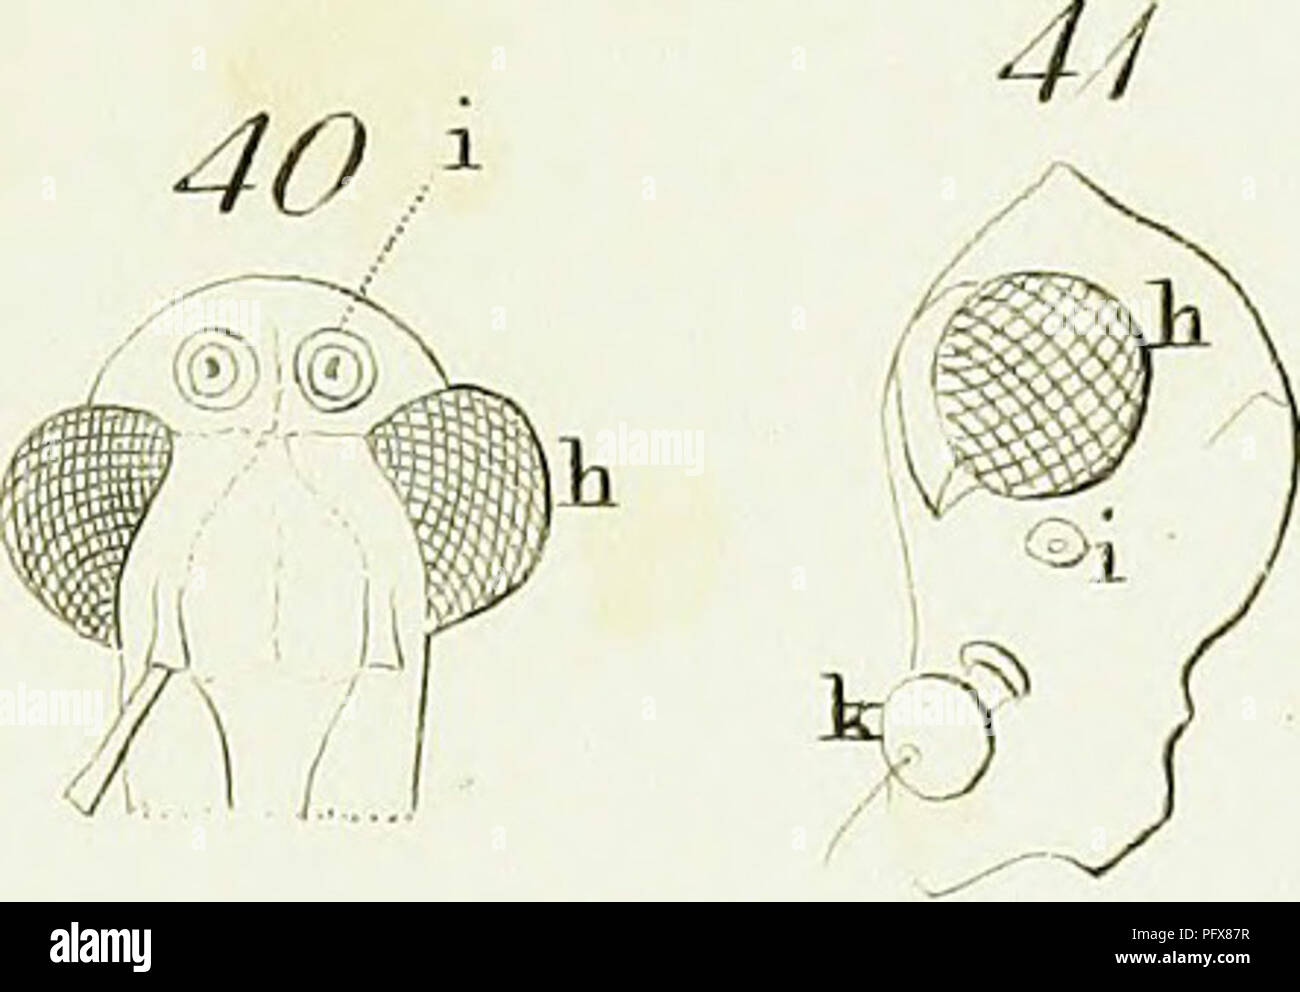 46 Stock Photos Images Page 83 Alamy Kirby G6 Wiring Diagrams An Introduction To Entomology Or Elements Of The Natural History Insects